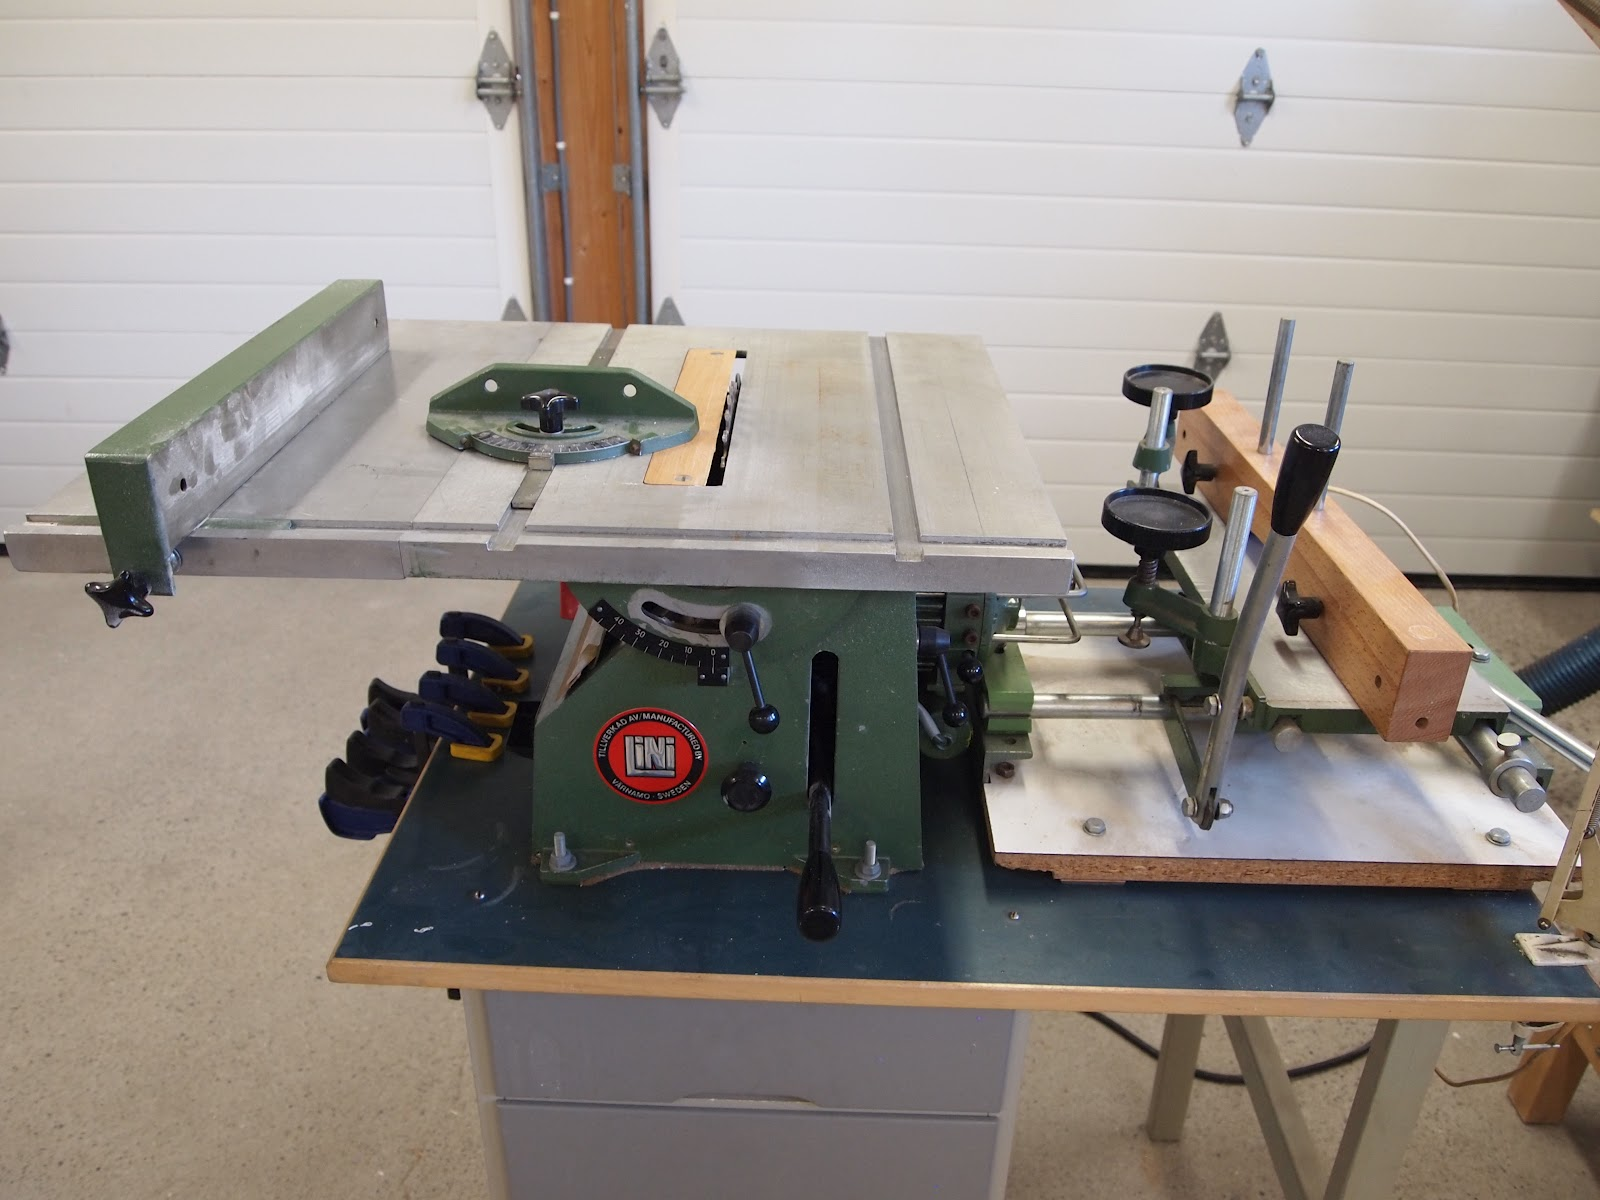 Elegant 573 Results For Woodworking Power Tools  For Sale Classifieds